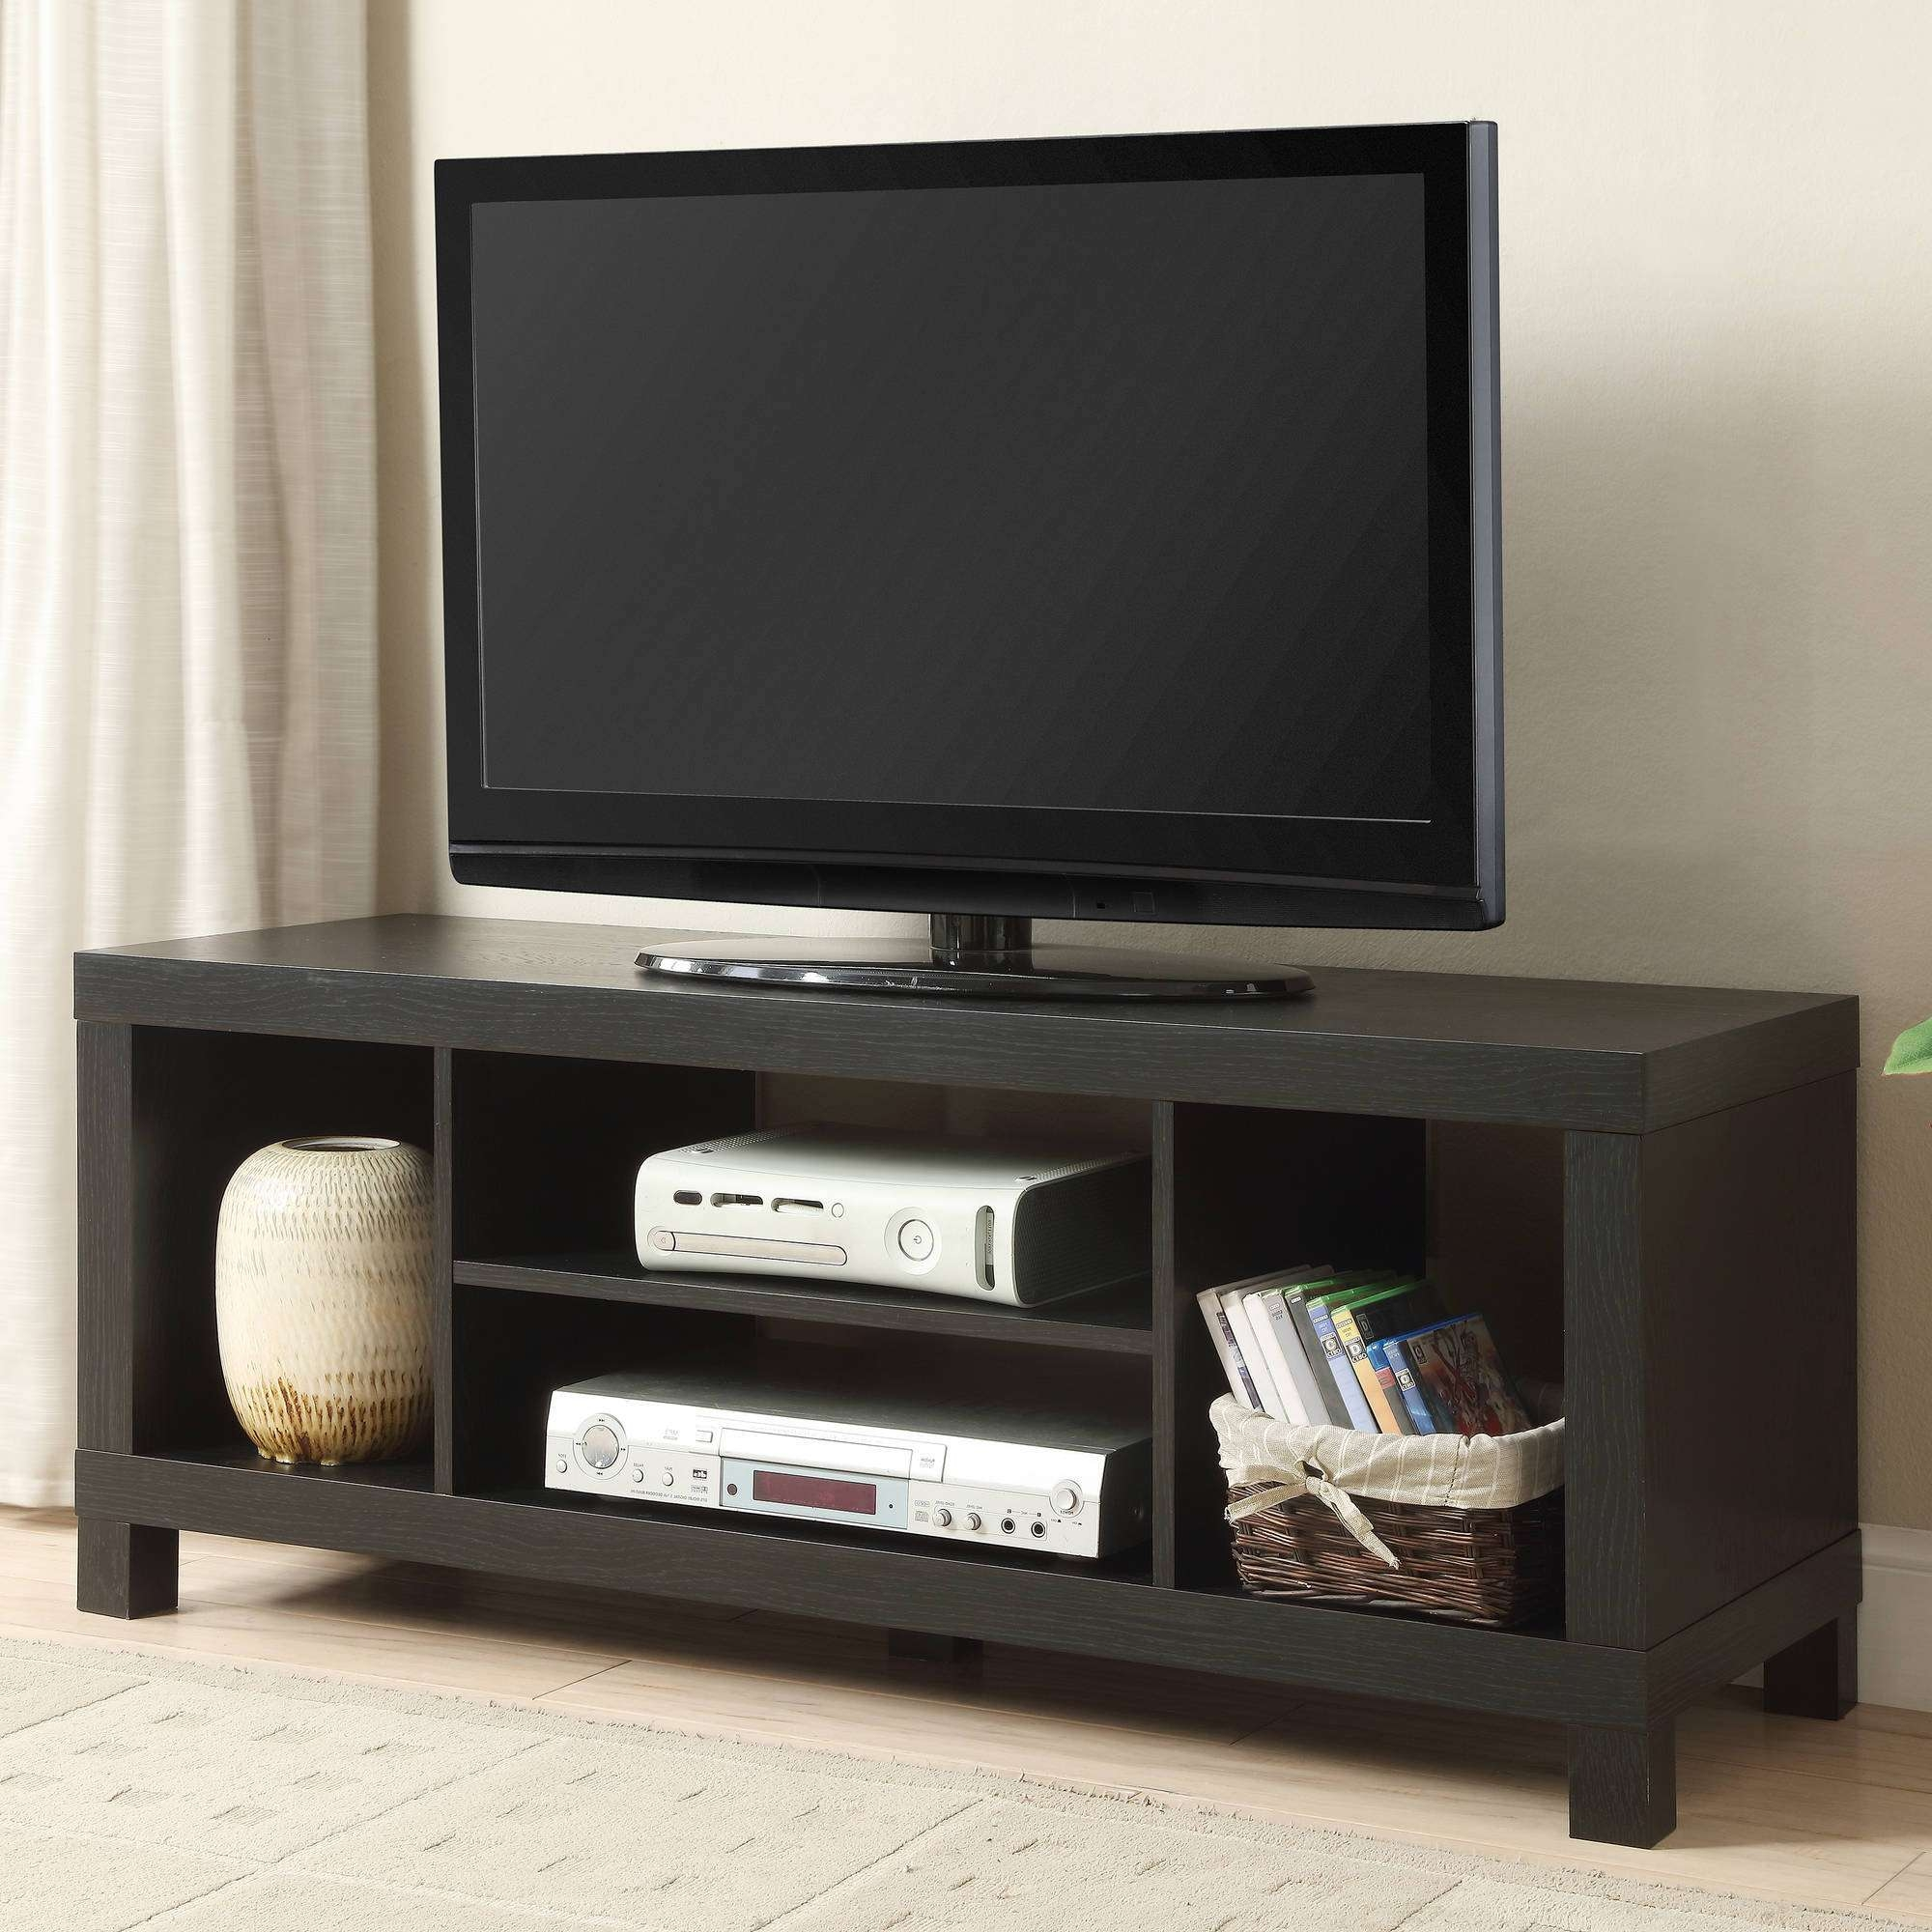 Tv : Unique Tv Stands For Flat Screens Remarkable' Commendable Throughout Unique Tv Stands (View 12 of 20)